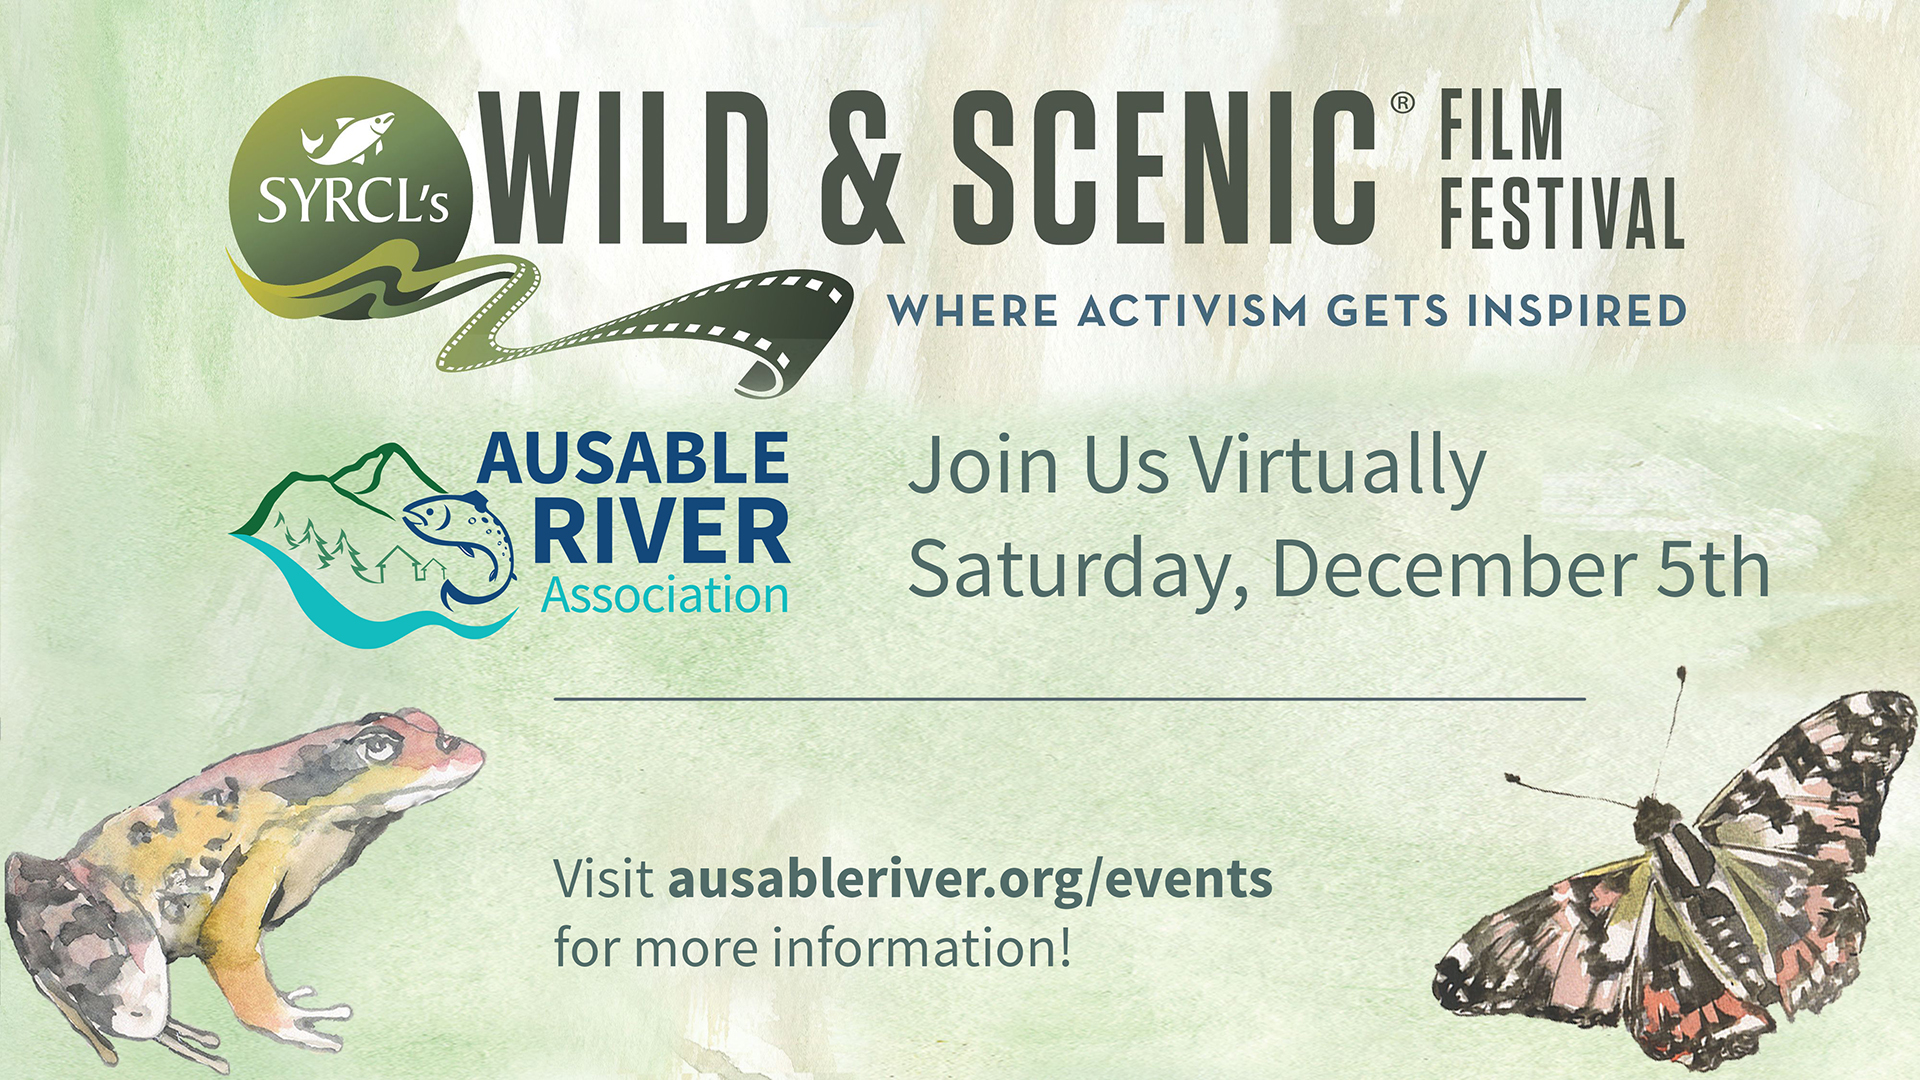 Ausable River Association Presents SYRCL's Wild & Scenic Film Festival On Tour